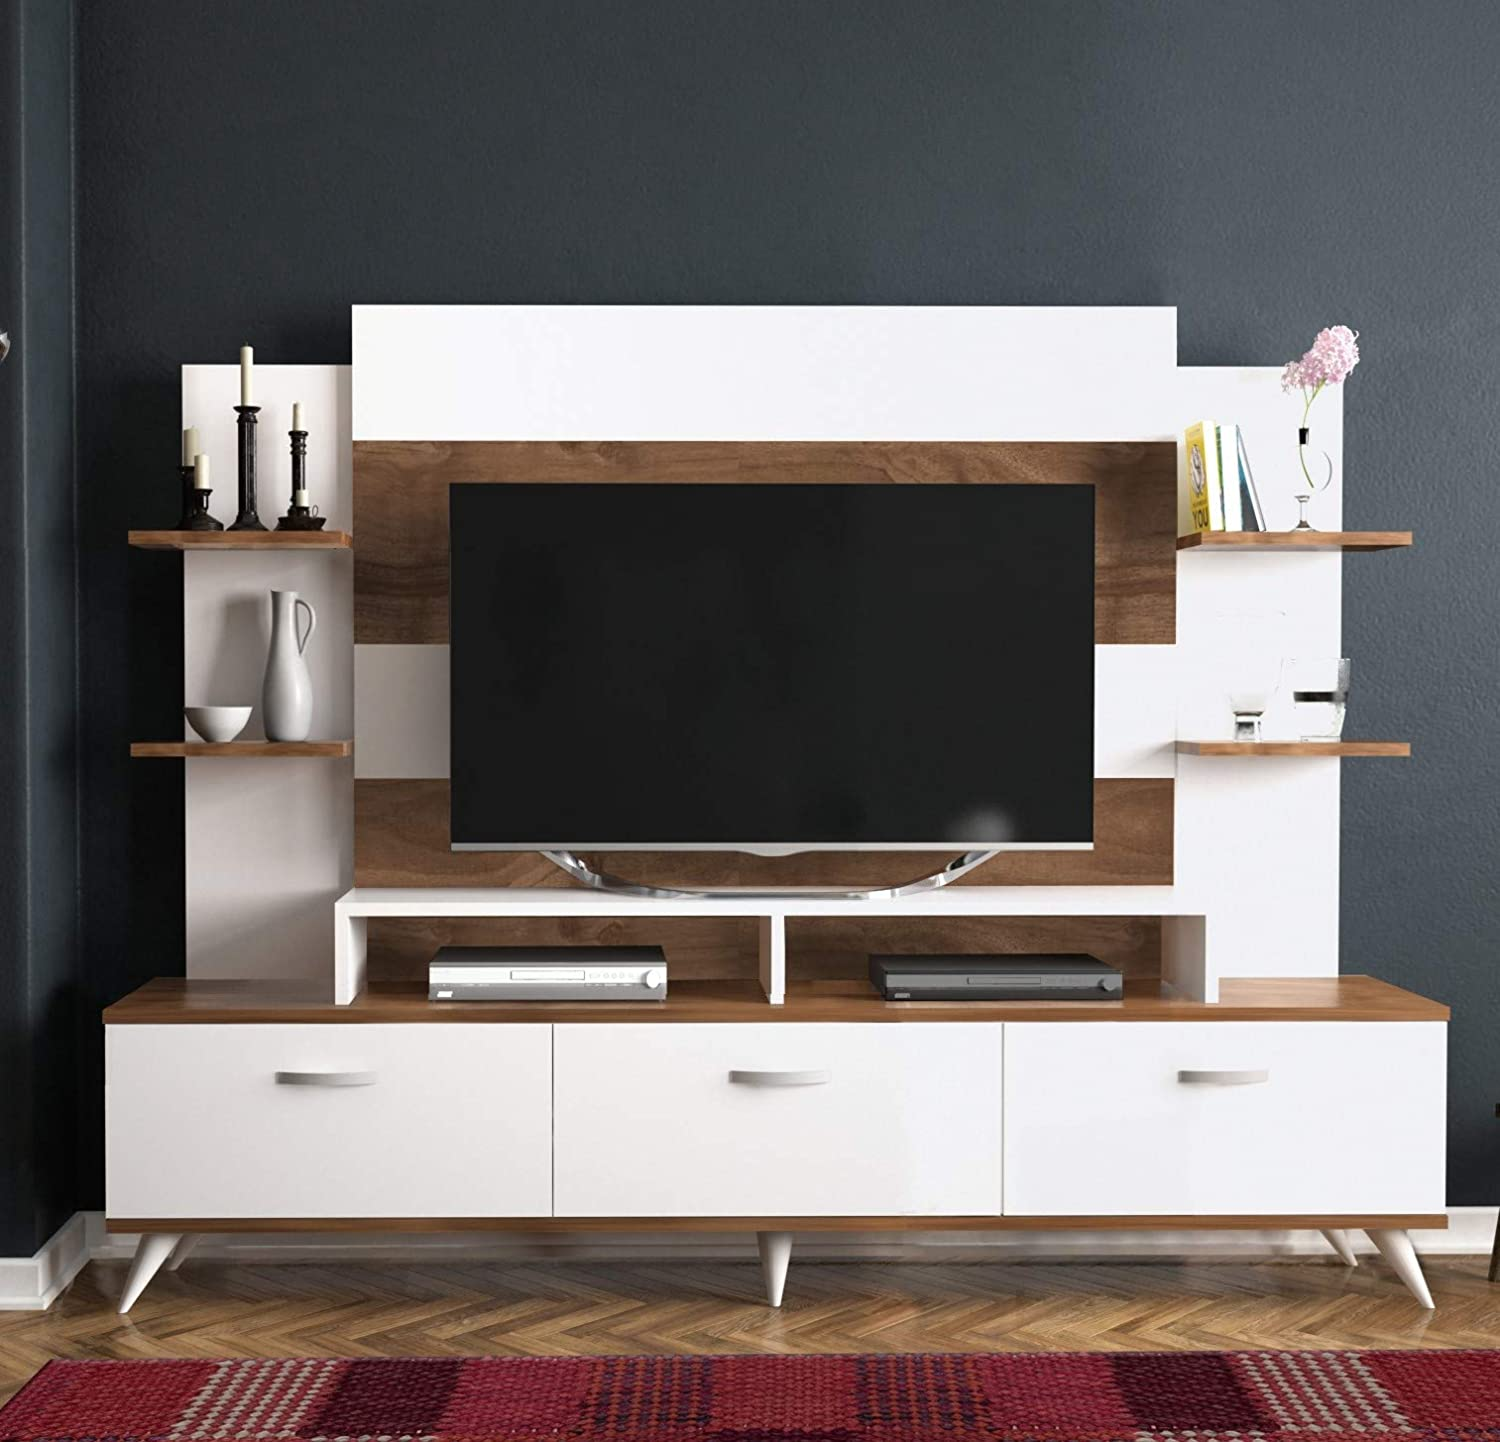 Amazon com decorotika diana tv stand and entertainment center living room furniture kitchen dining